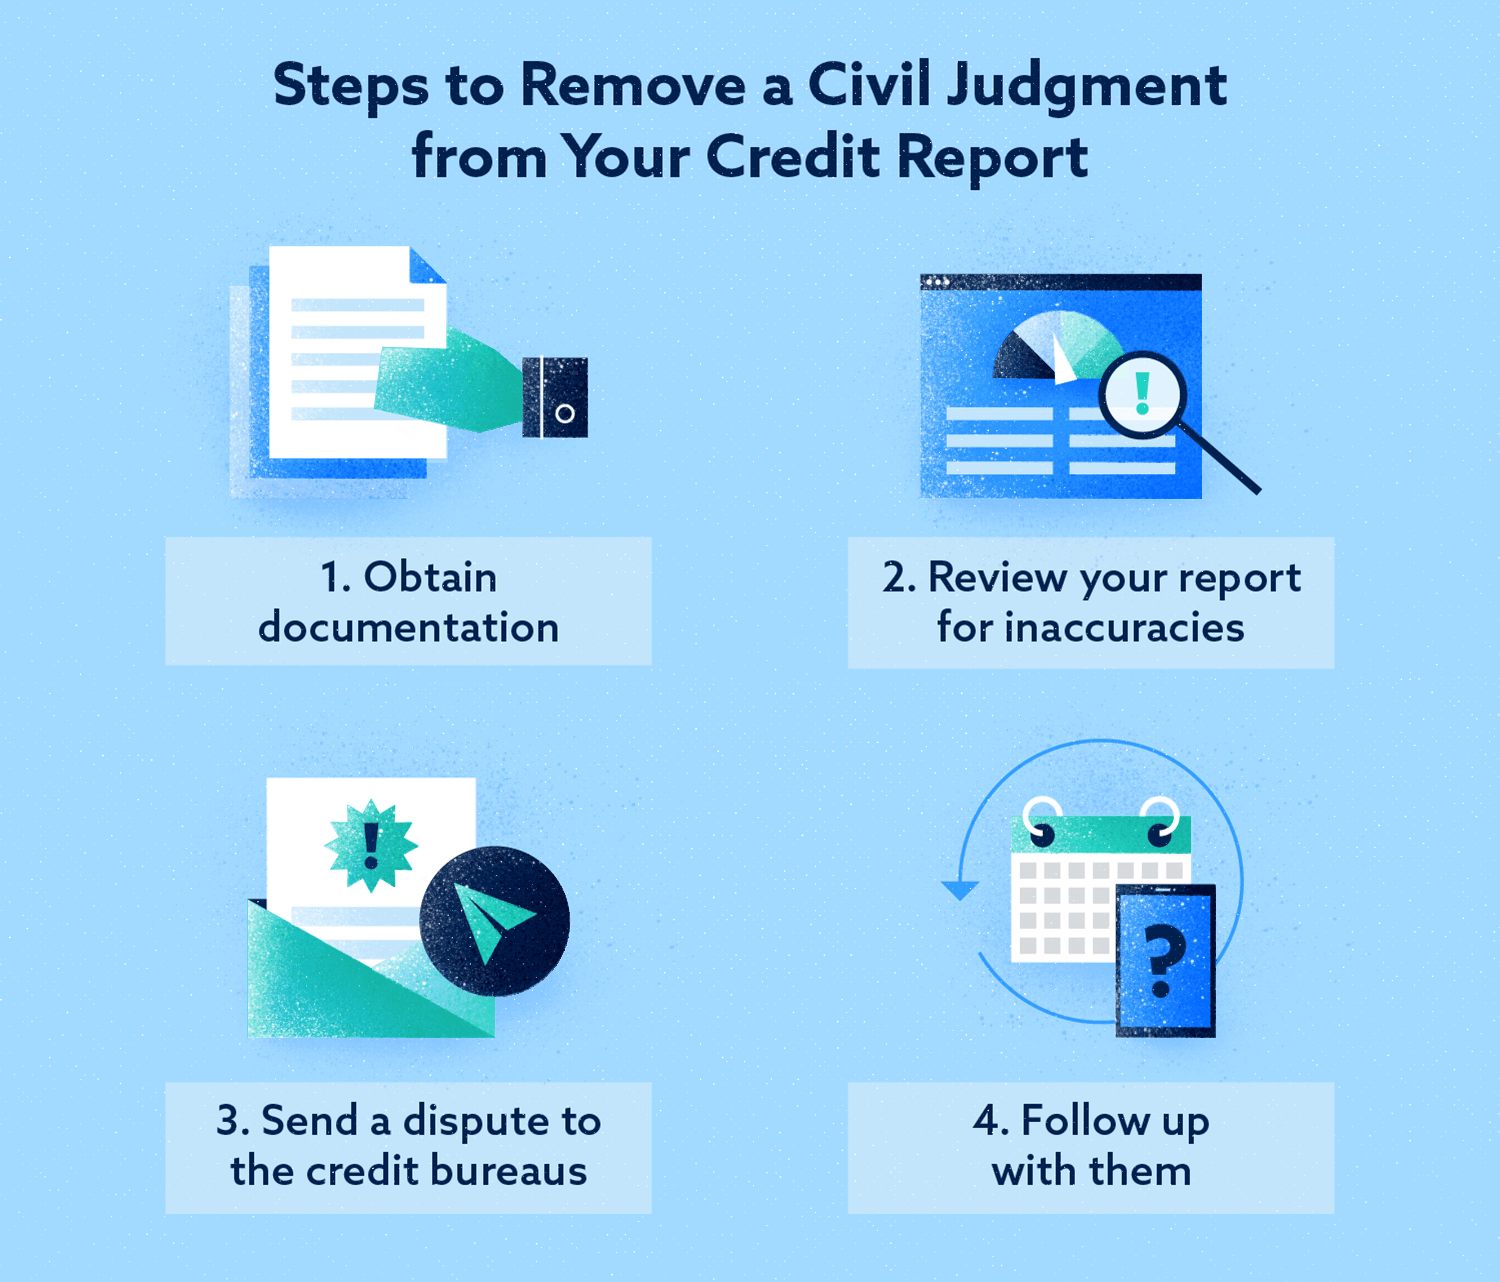 Steps to Remove a Civil Judgement from Your Credit Report Image